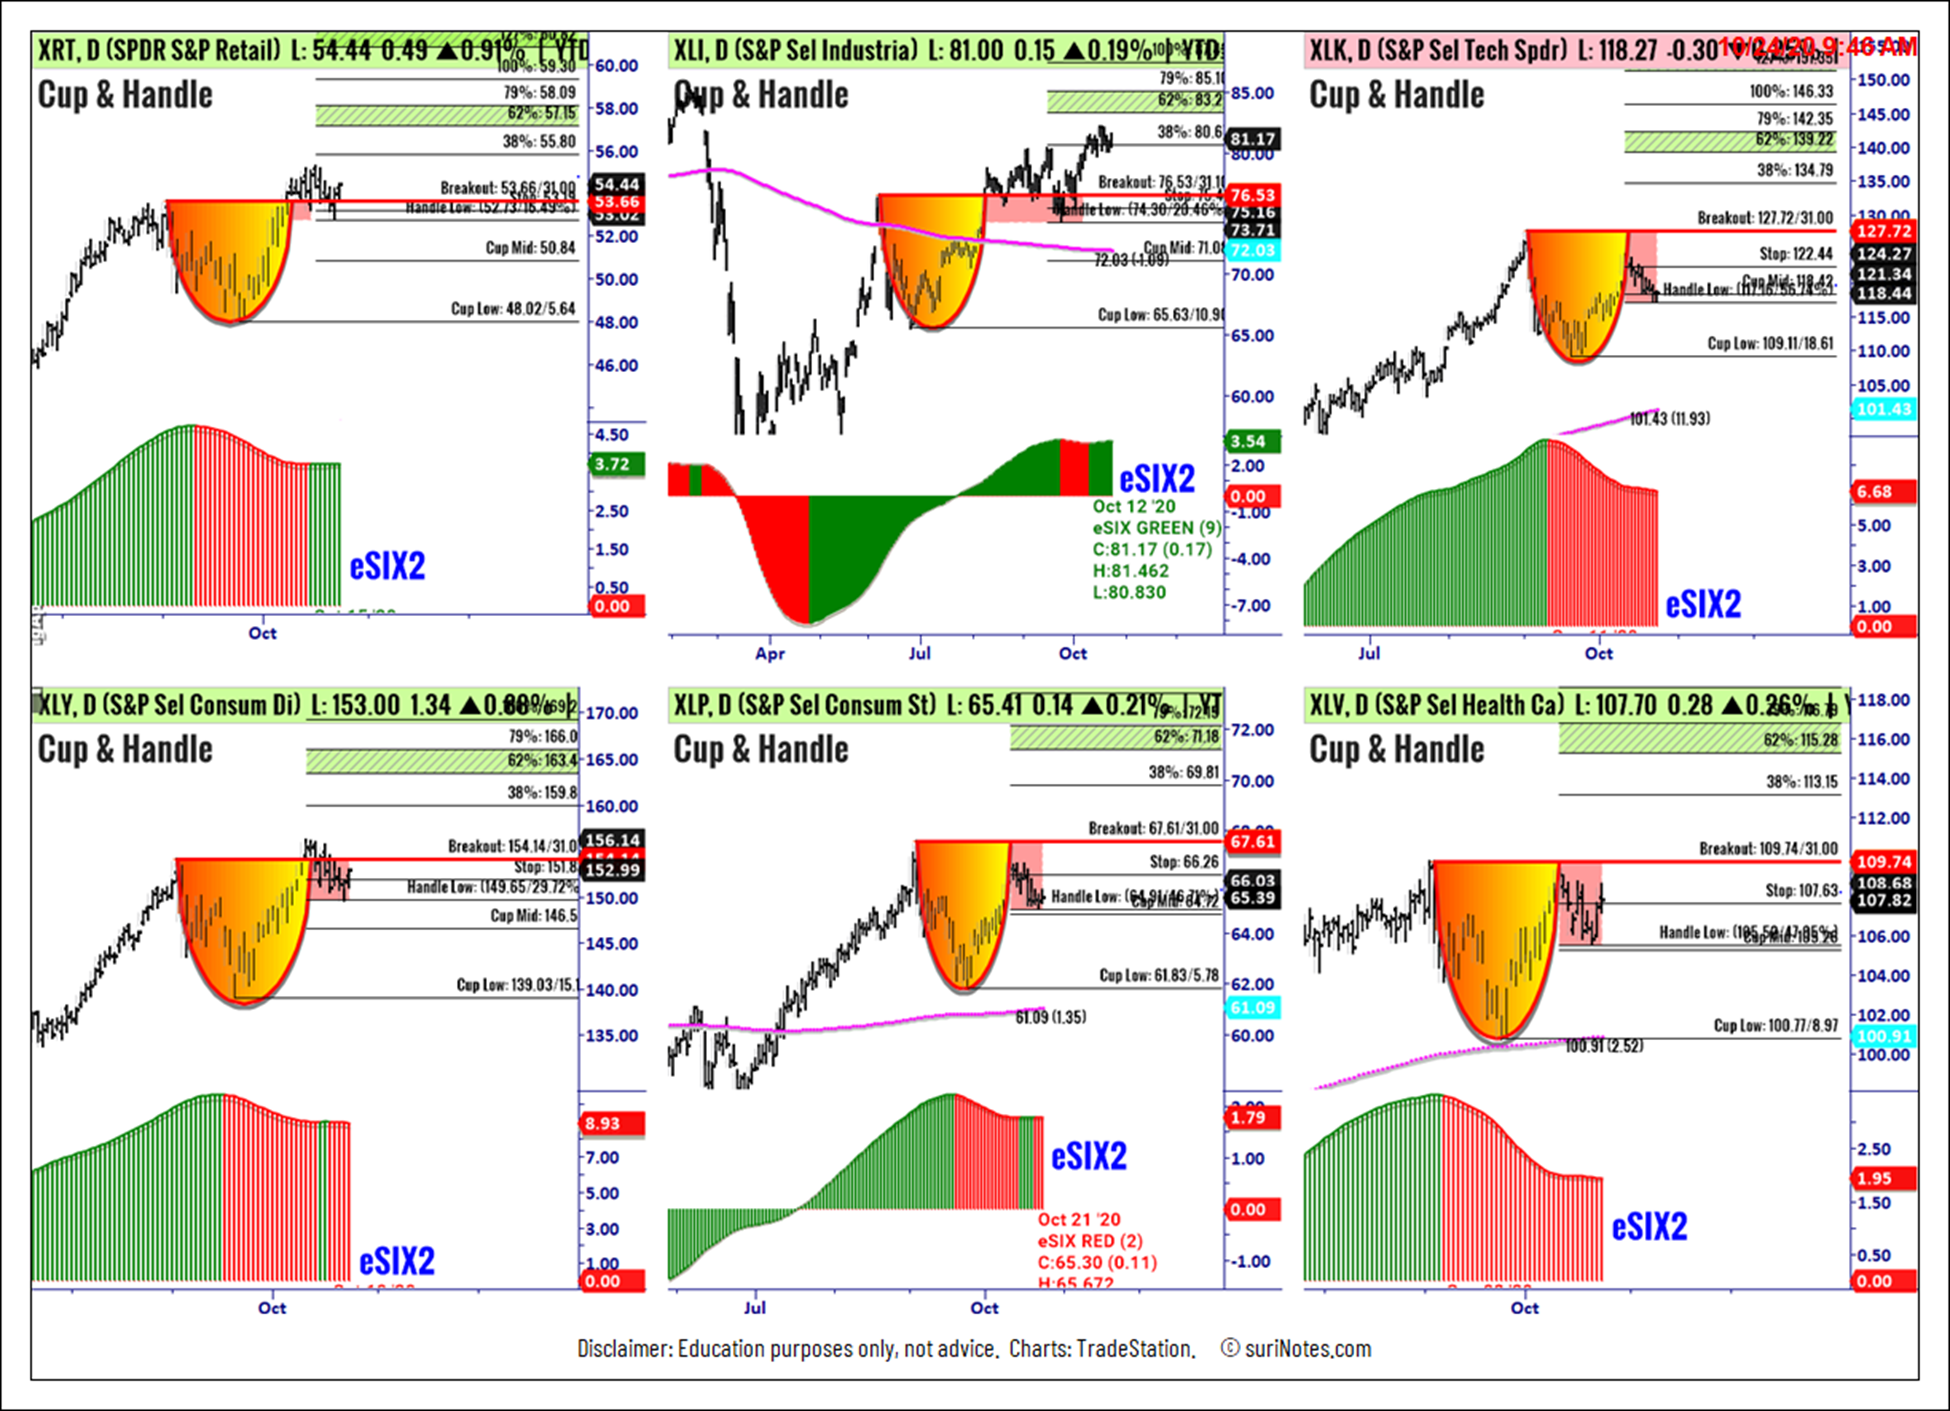 Sector SPDR ETF Cup & Handle Chart Patterns